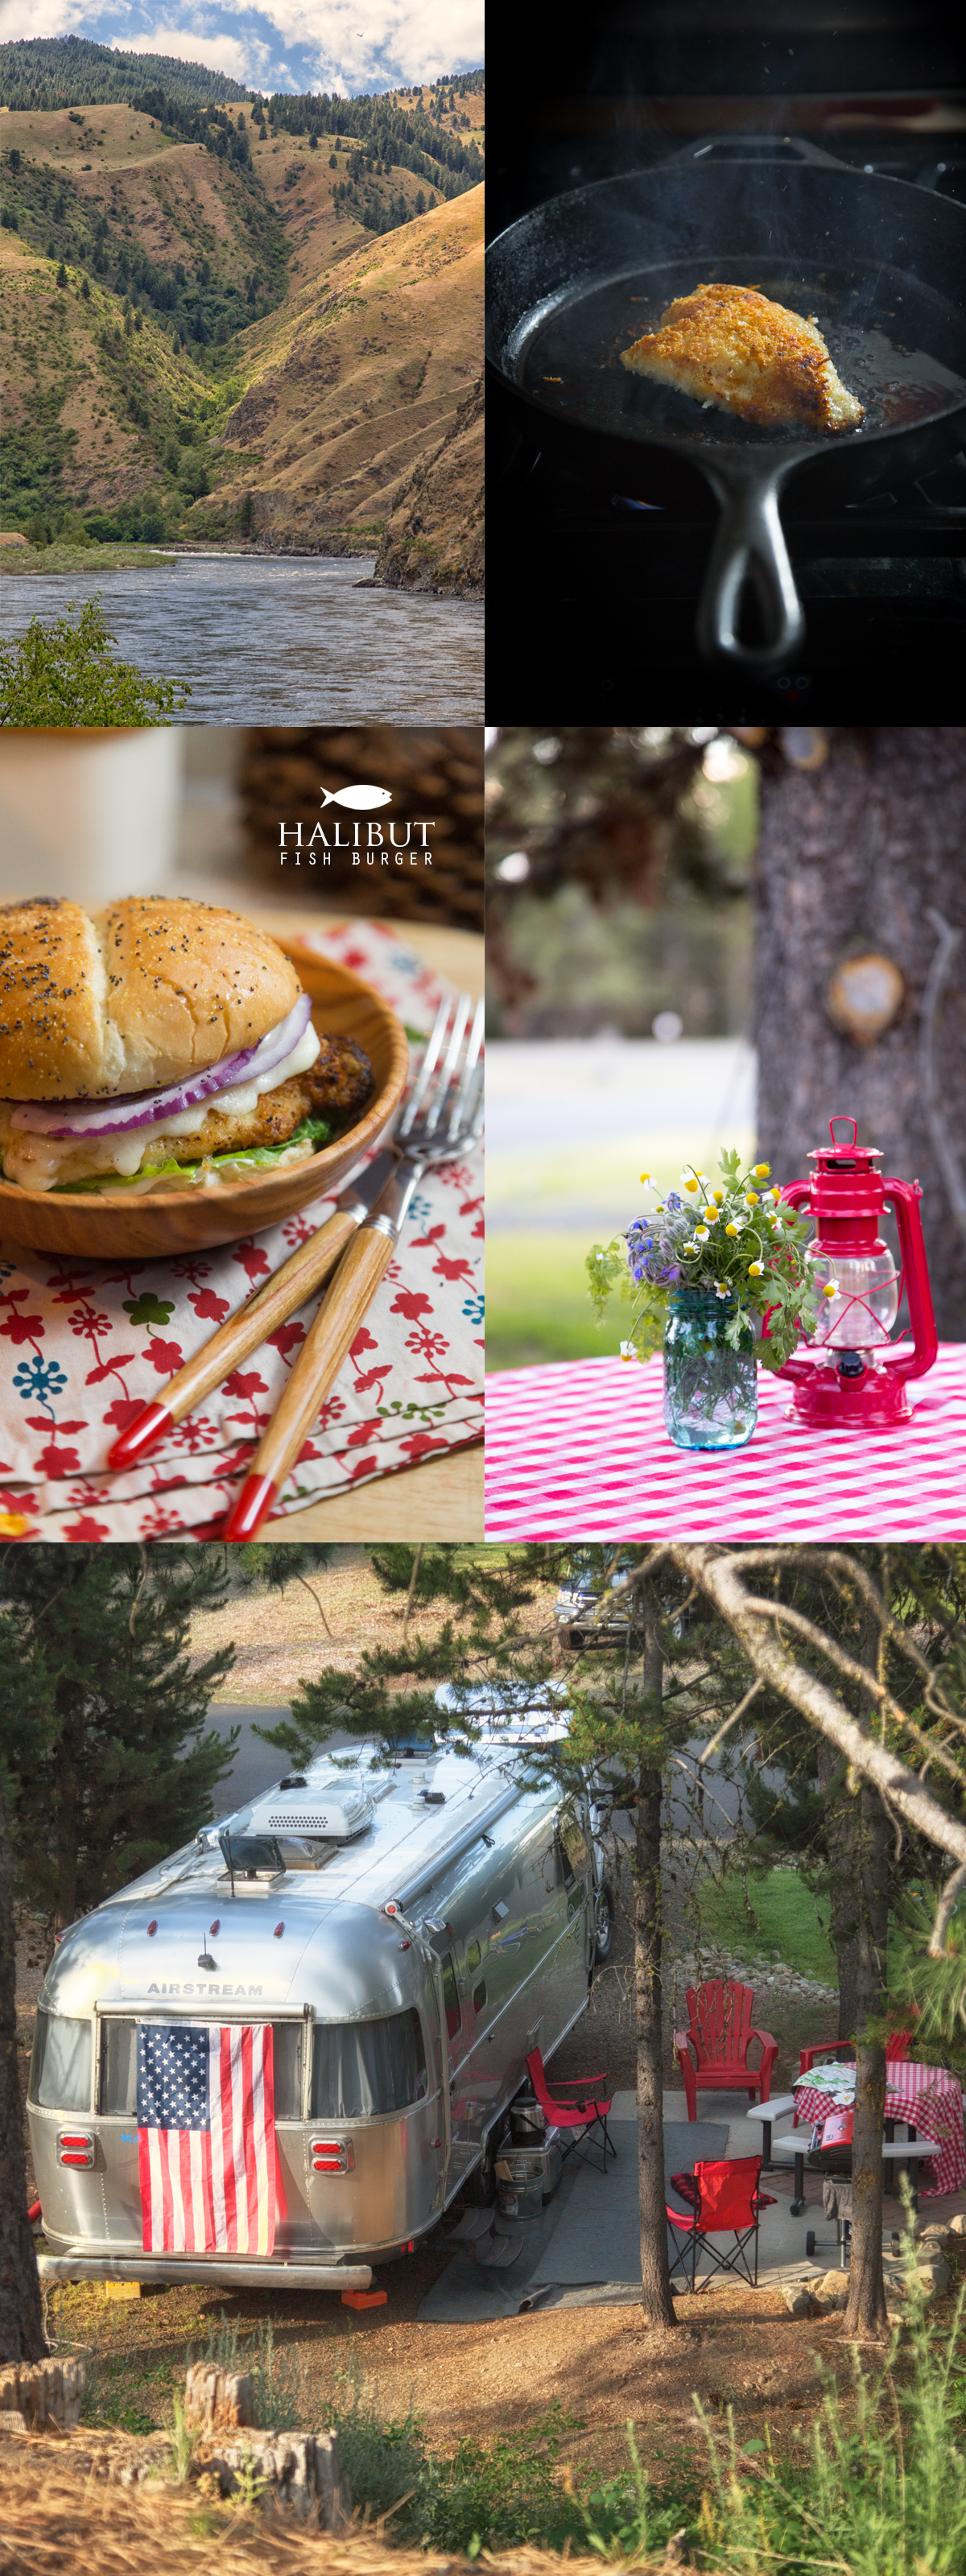 HALIBUT Fish Burger at the McCall RV Resort via J5MM.com